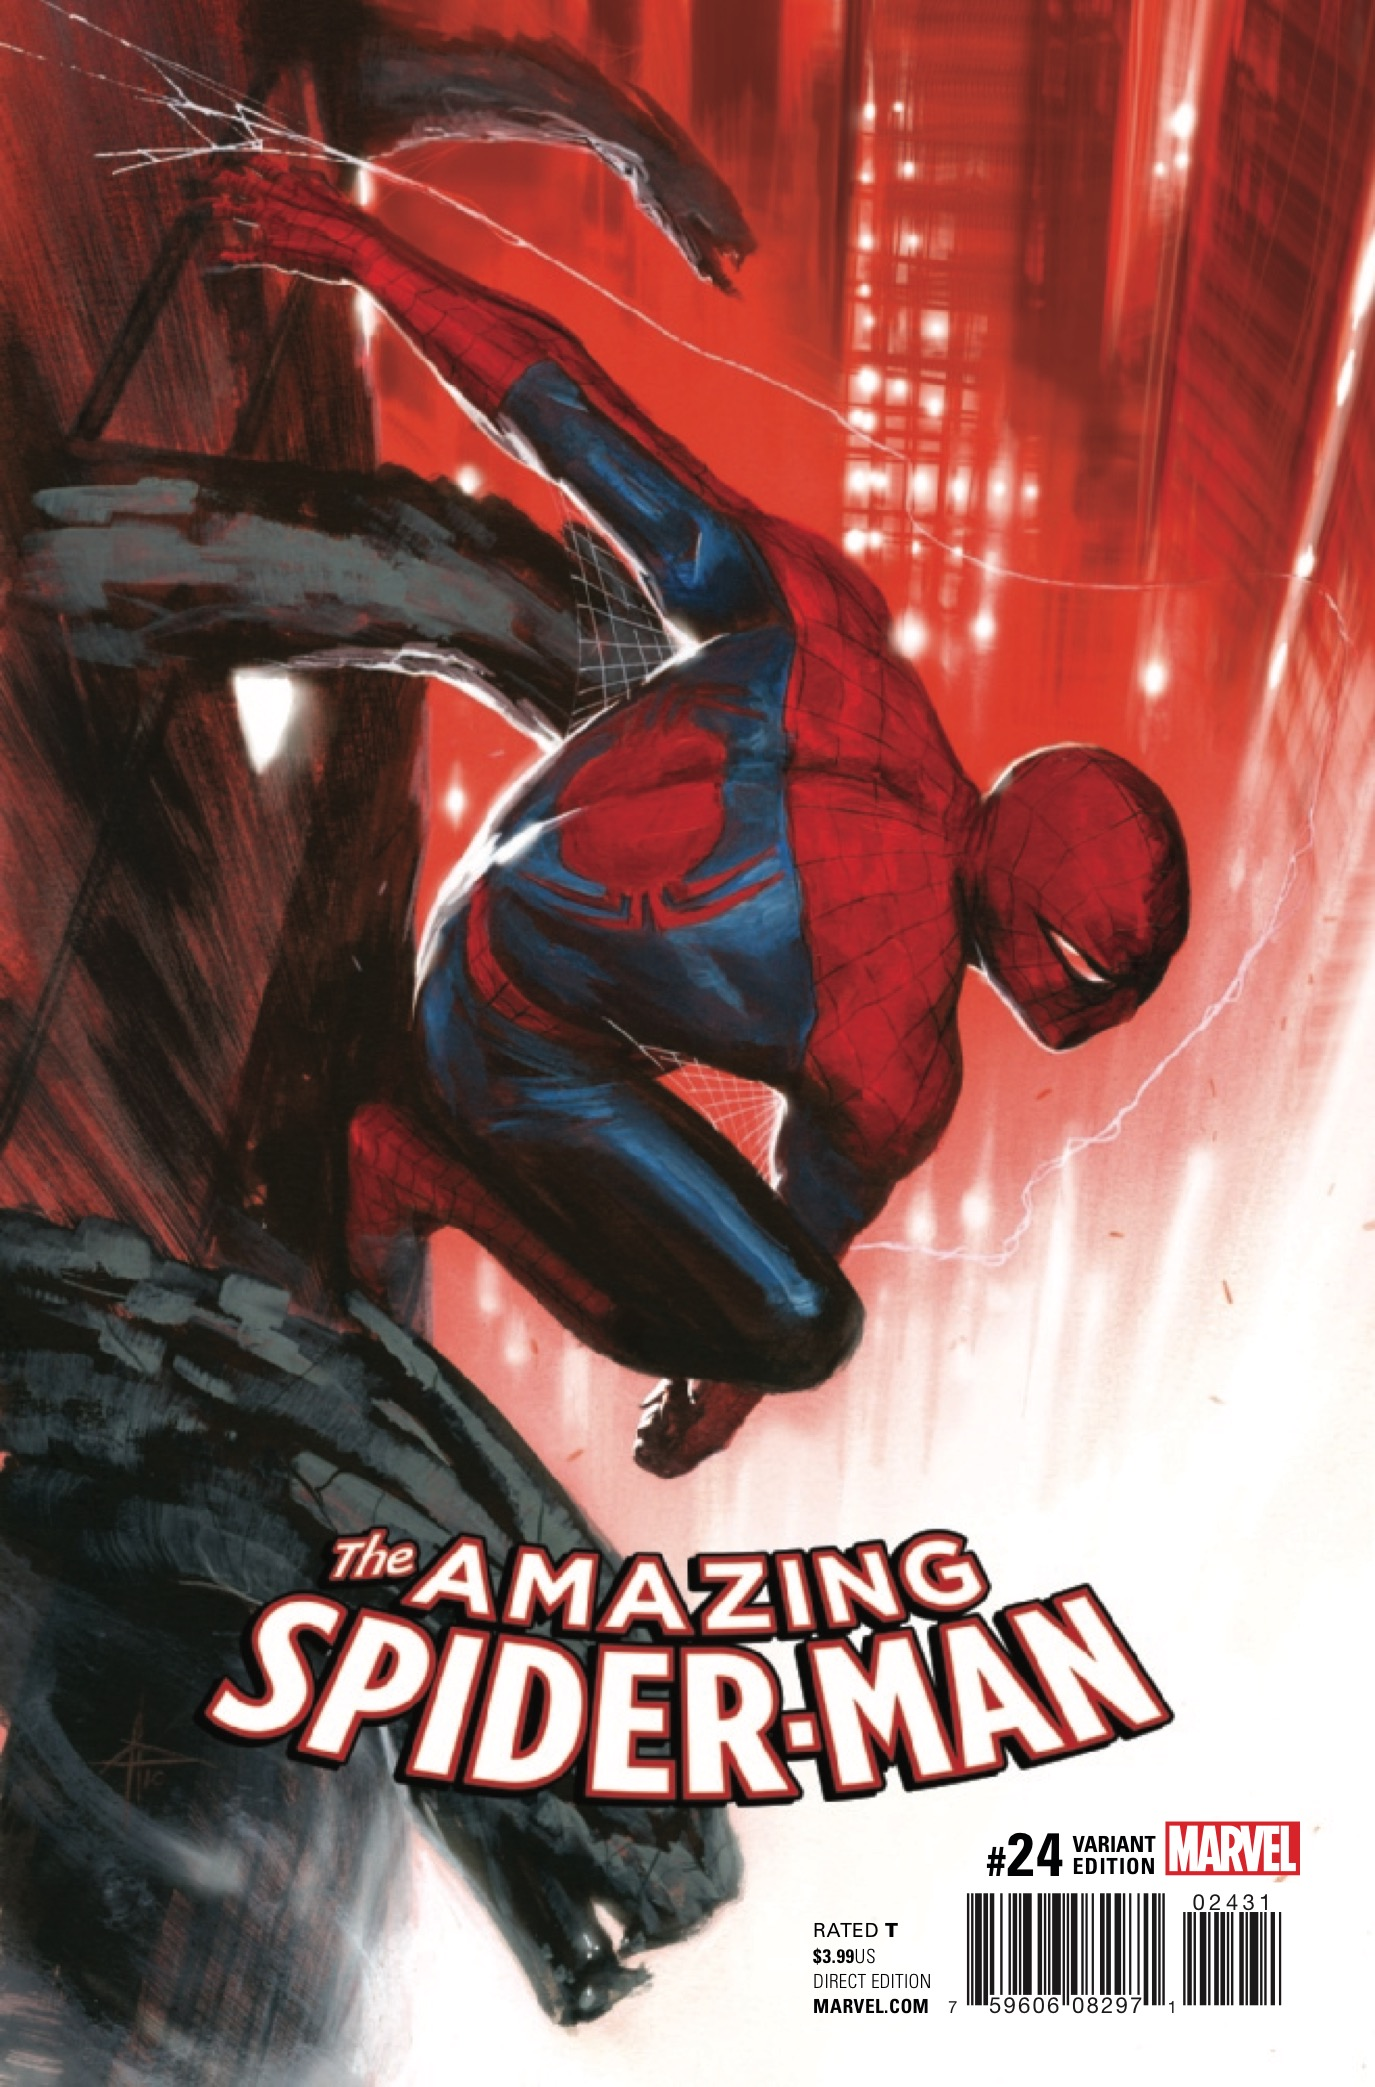 Amazing Spider-Man #24 Review